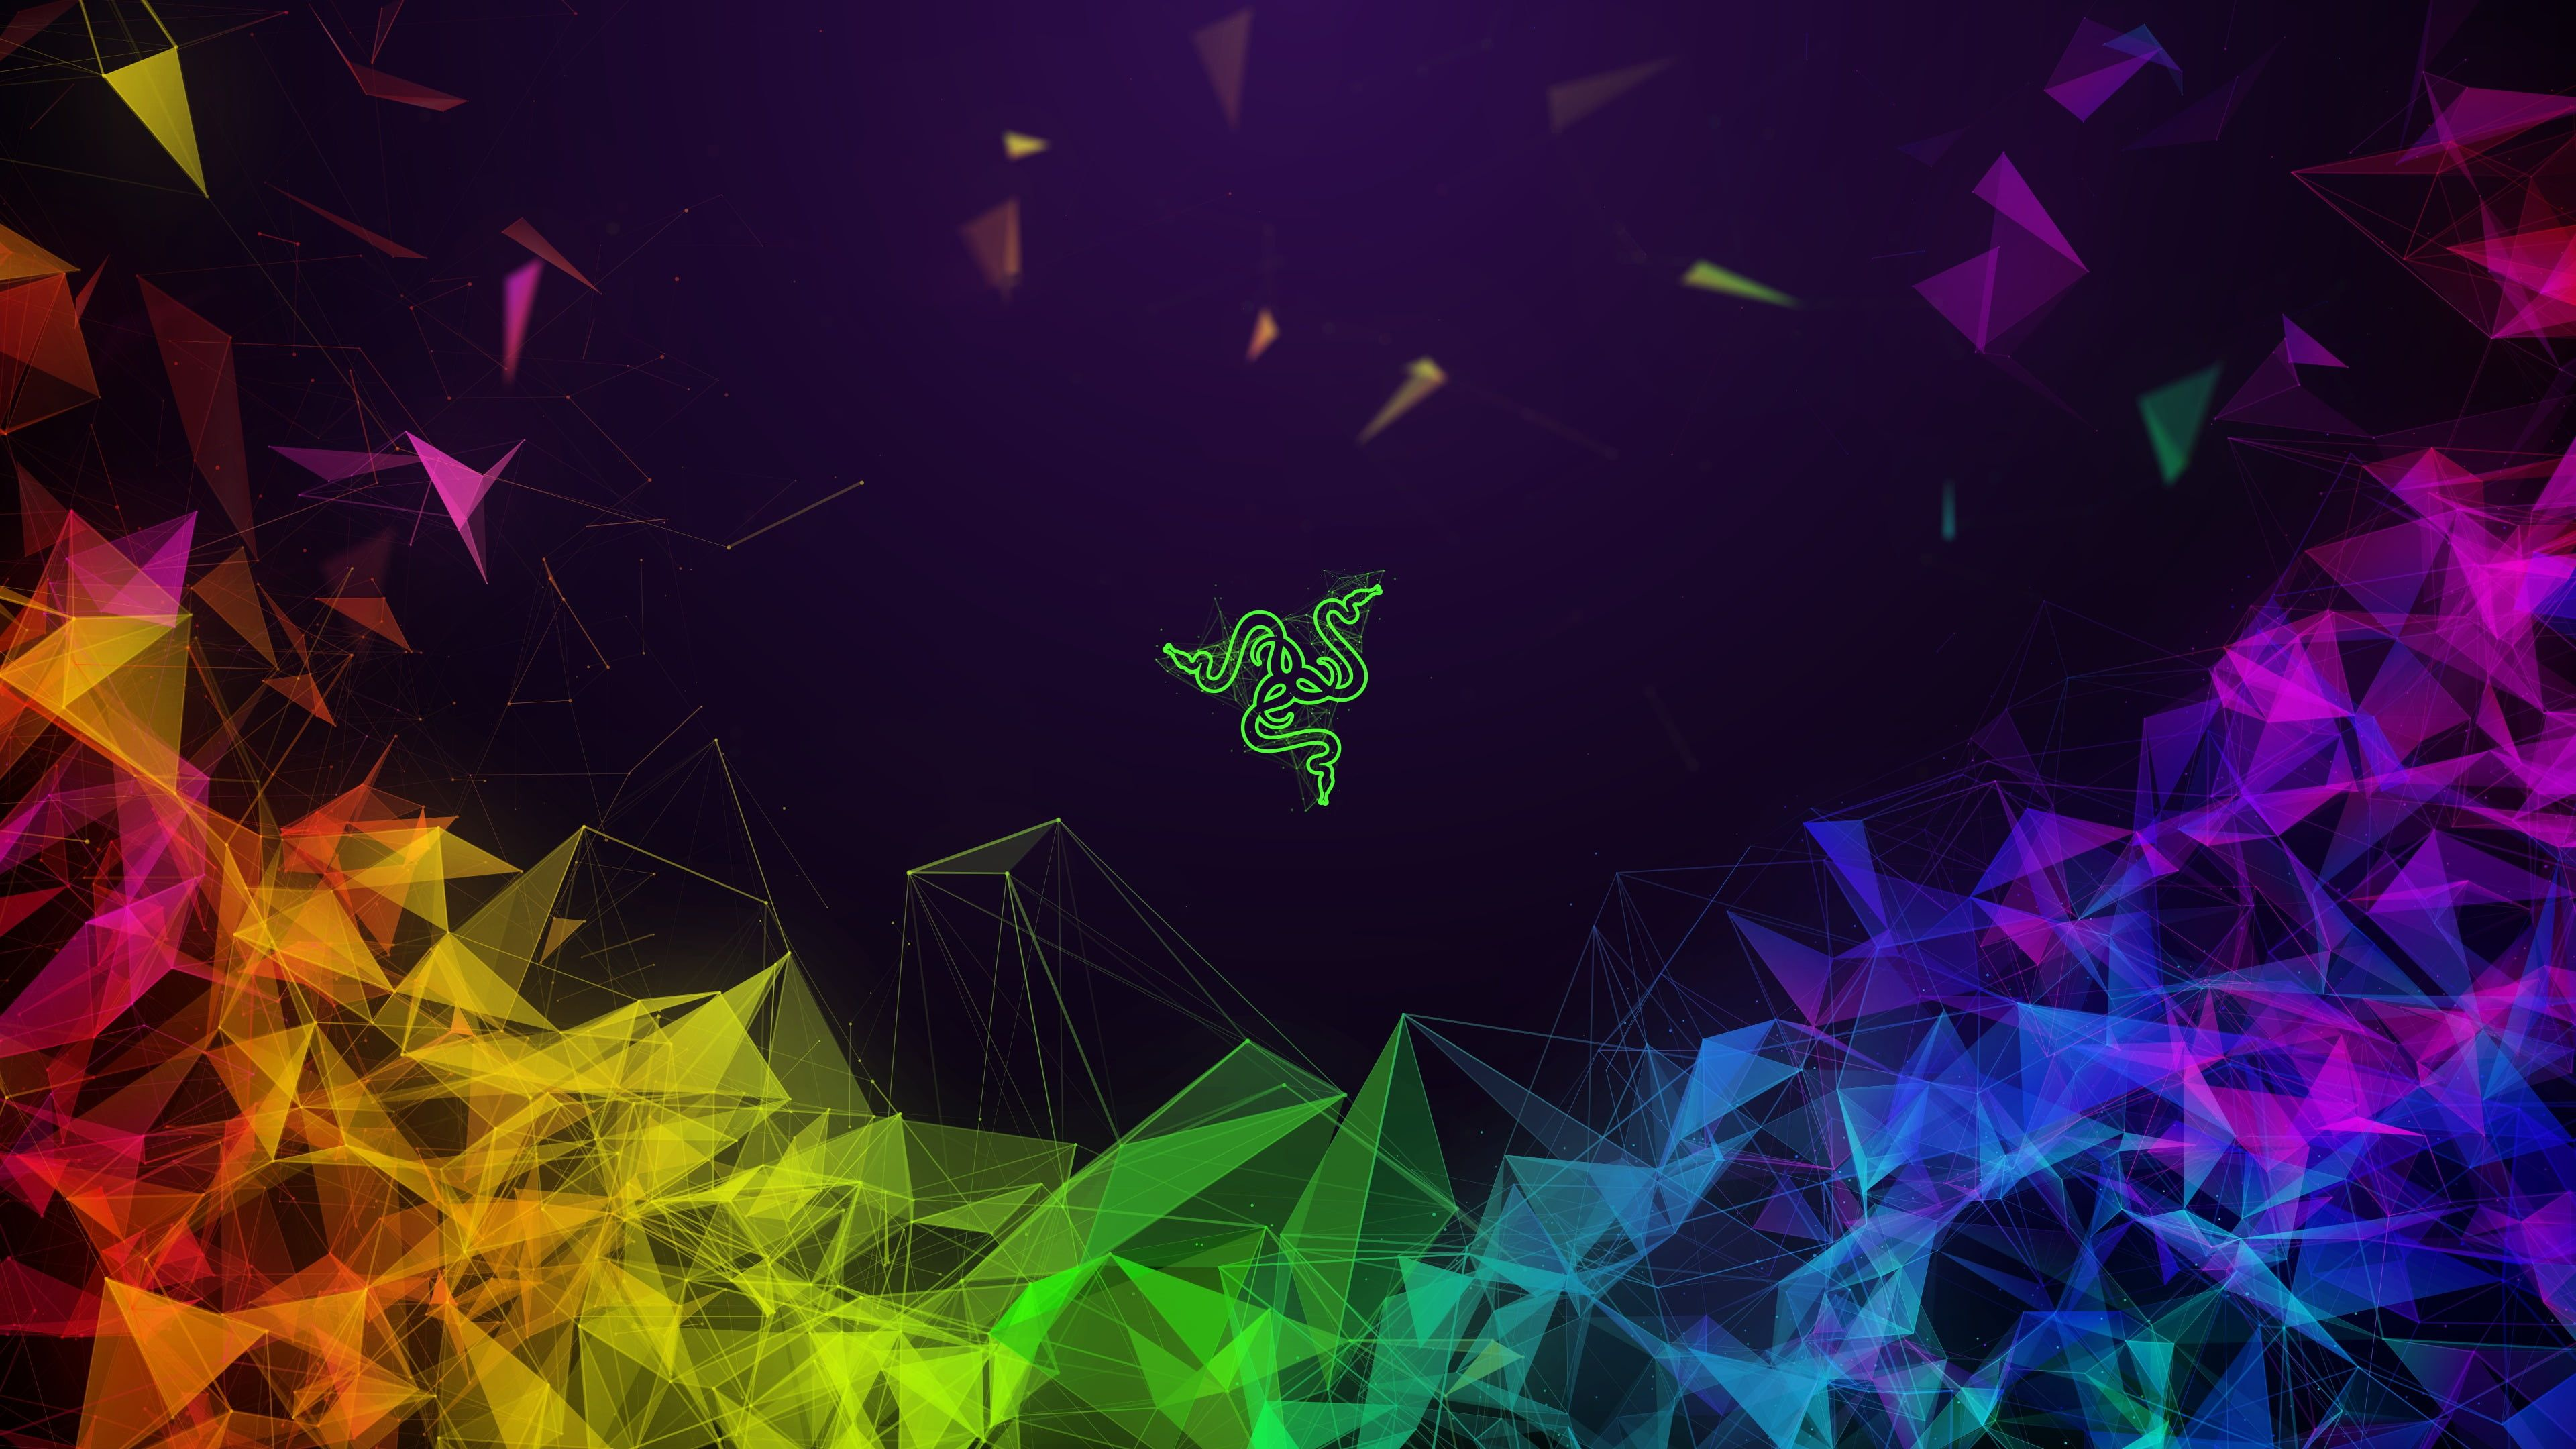 Razer Logo Colorful Razer Inc 4k Wallpaper Hdwallpaper Desktop In 2020 Uhd Wallpaper Gaming Wallpapers Wallpaper Pc